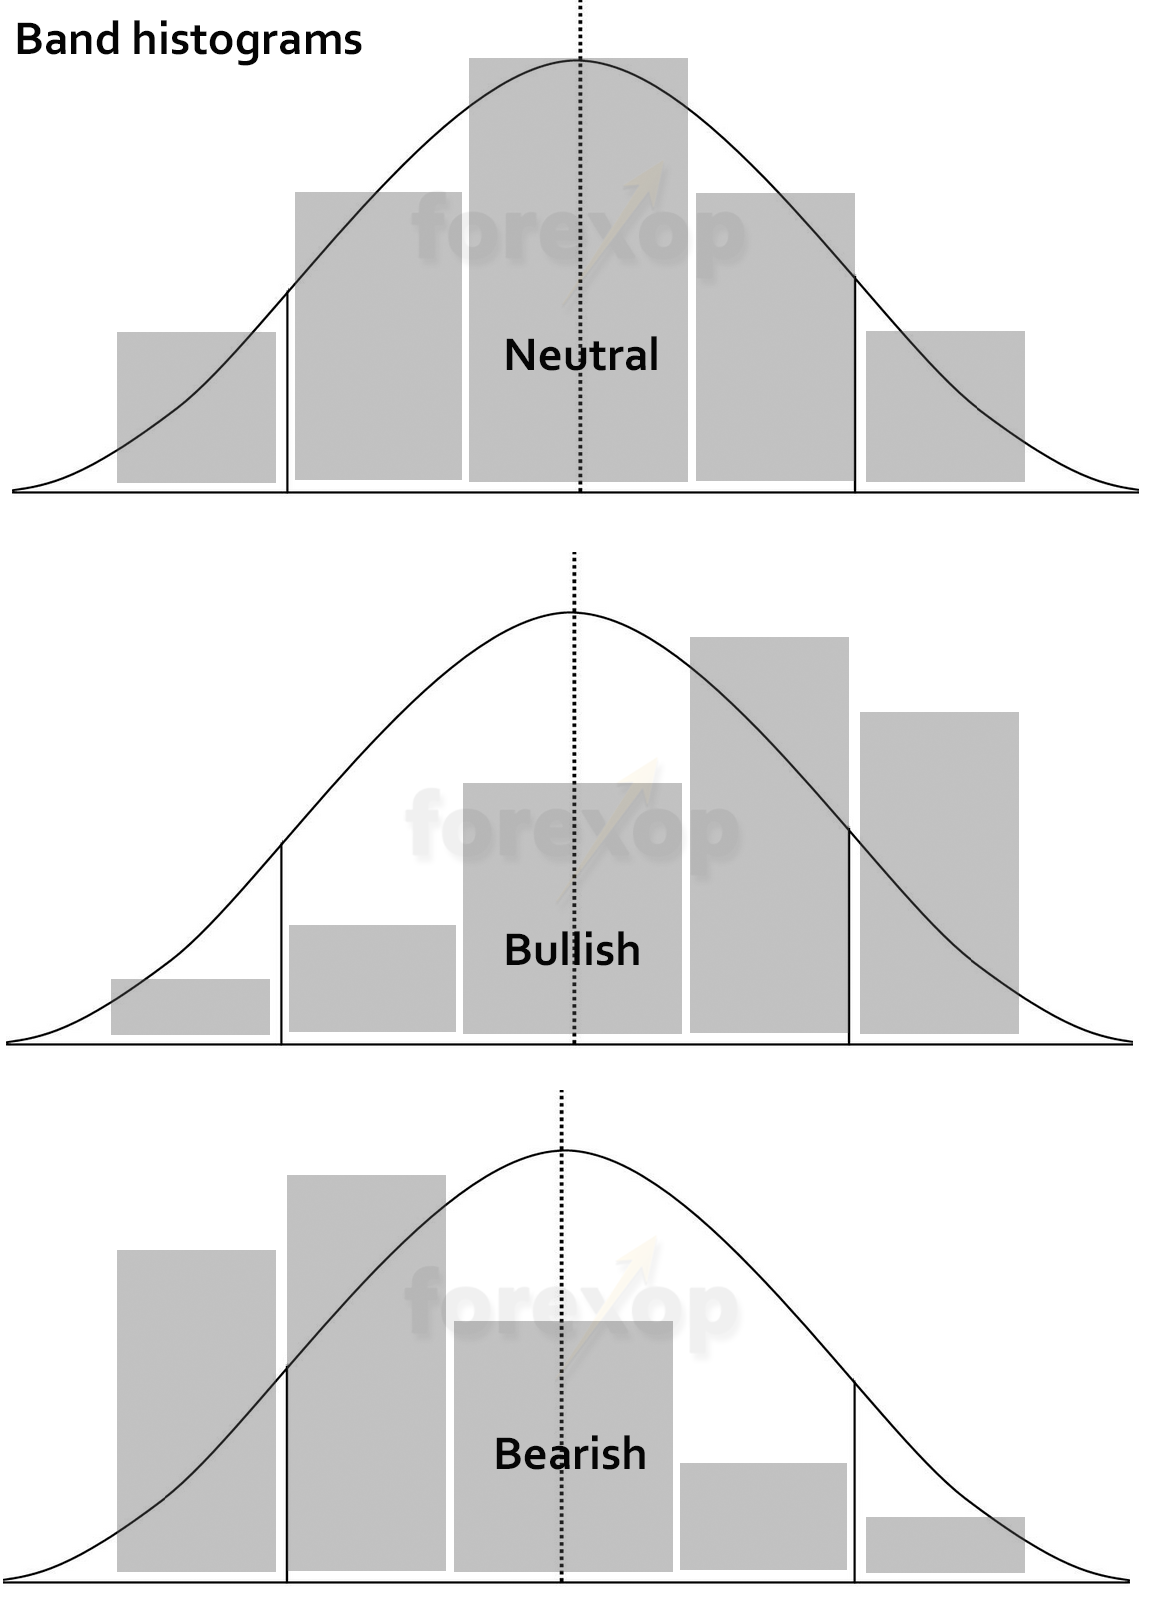 Figure 3: Histogram shapes